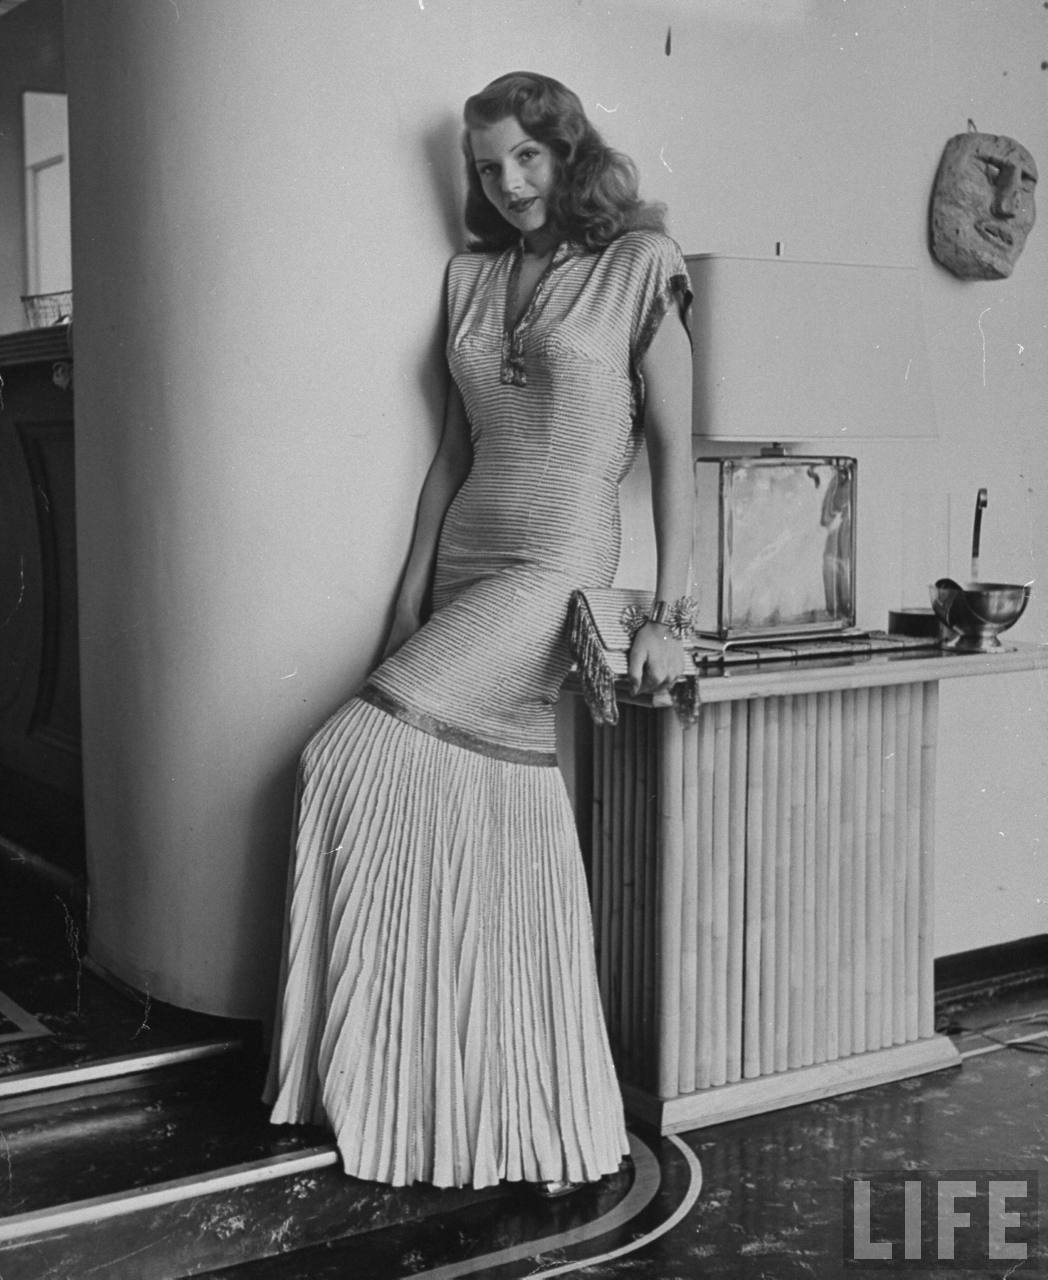 Fashionable Forties: Evening Gowns